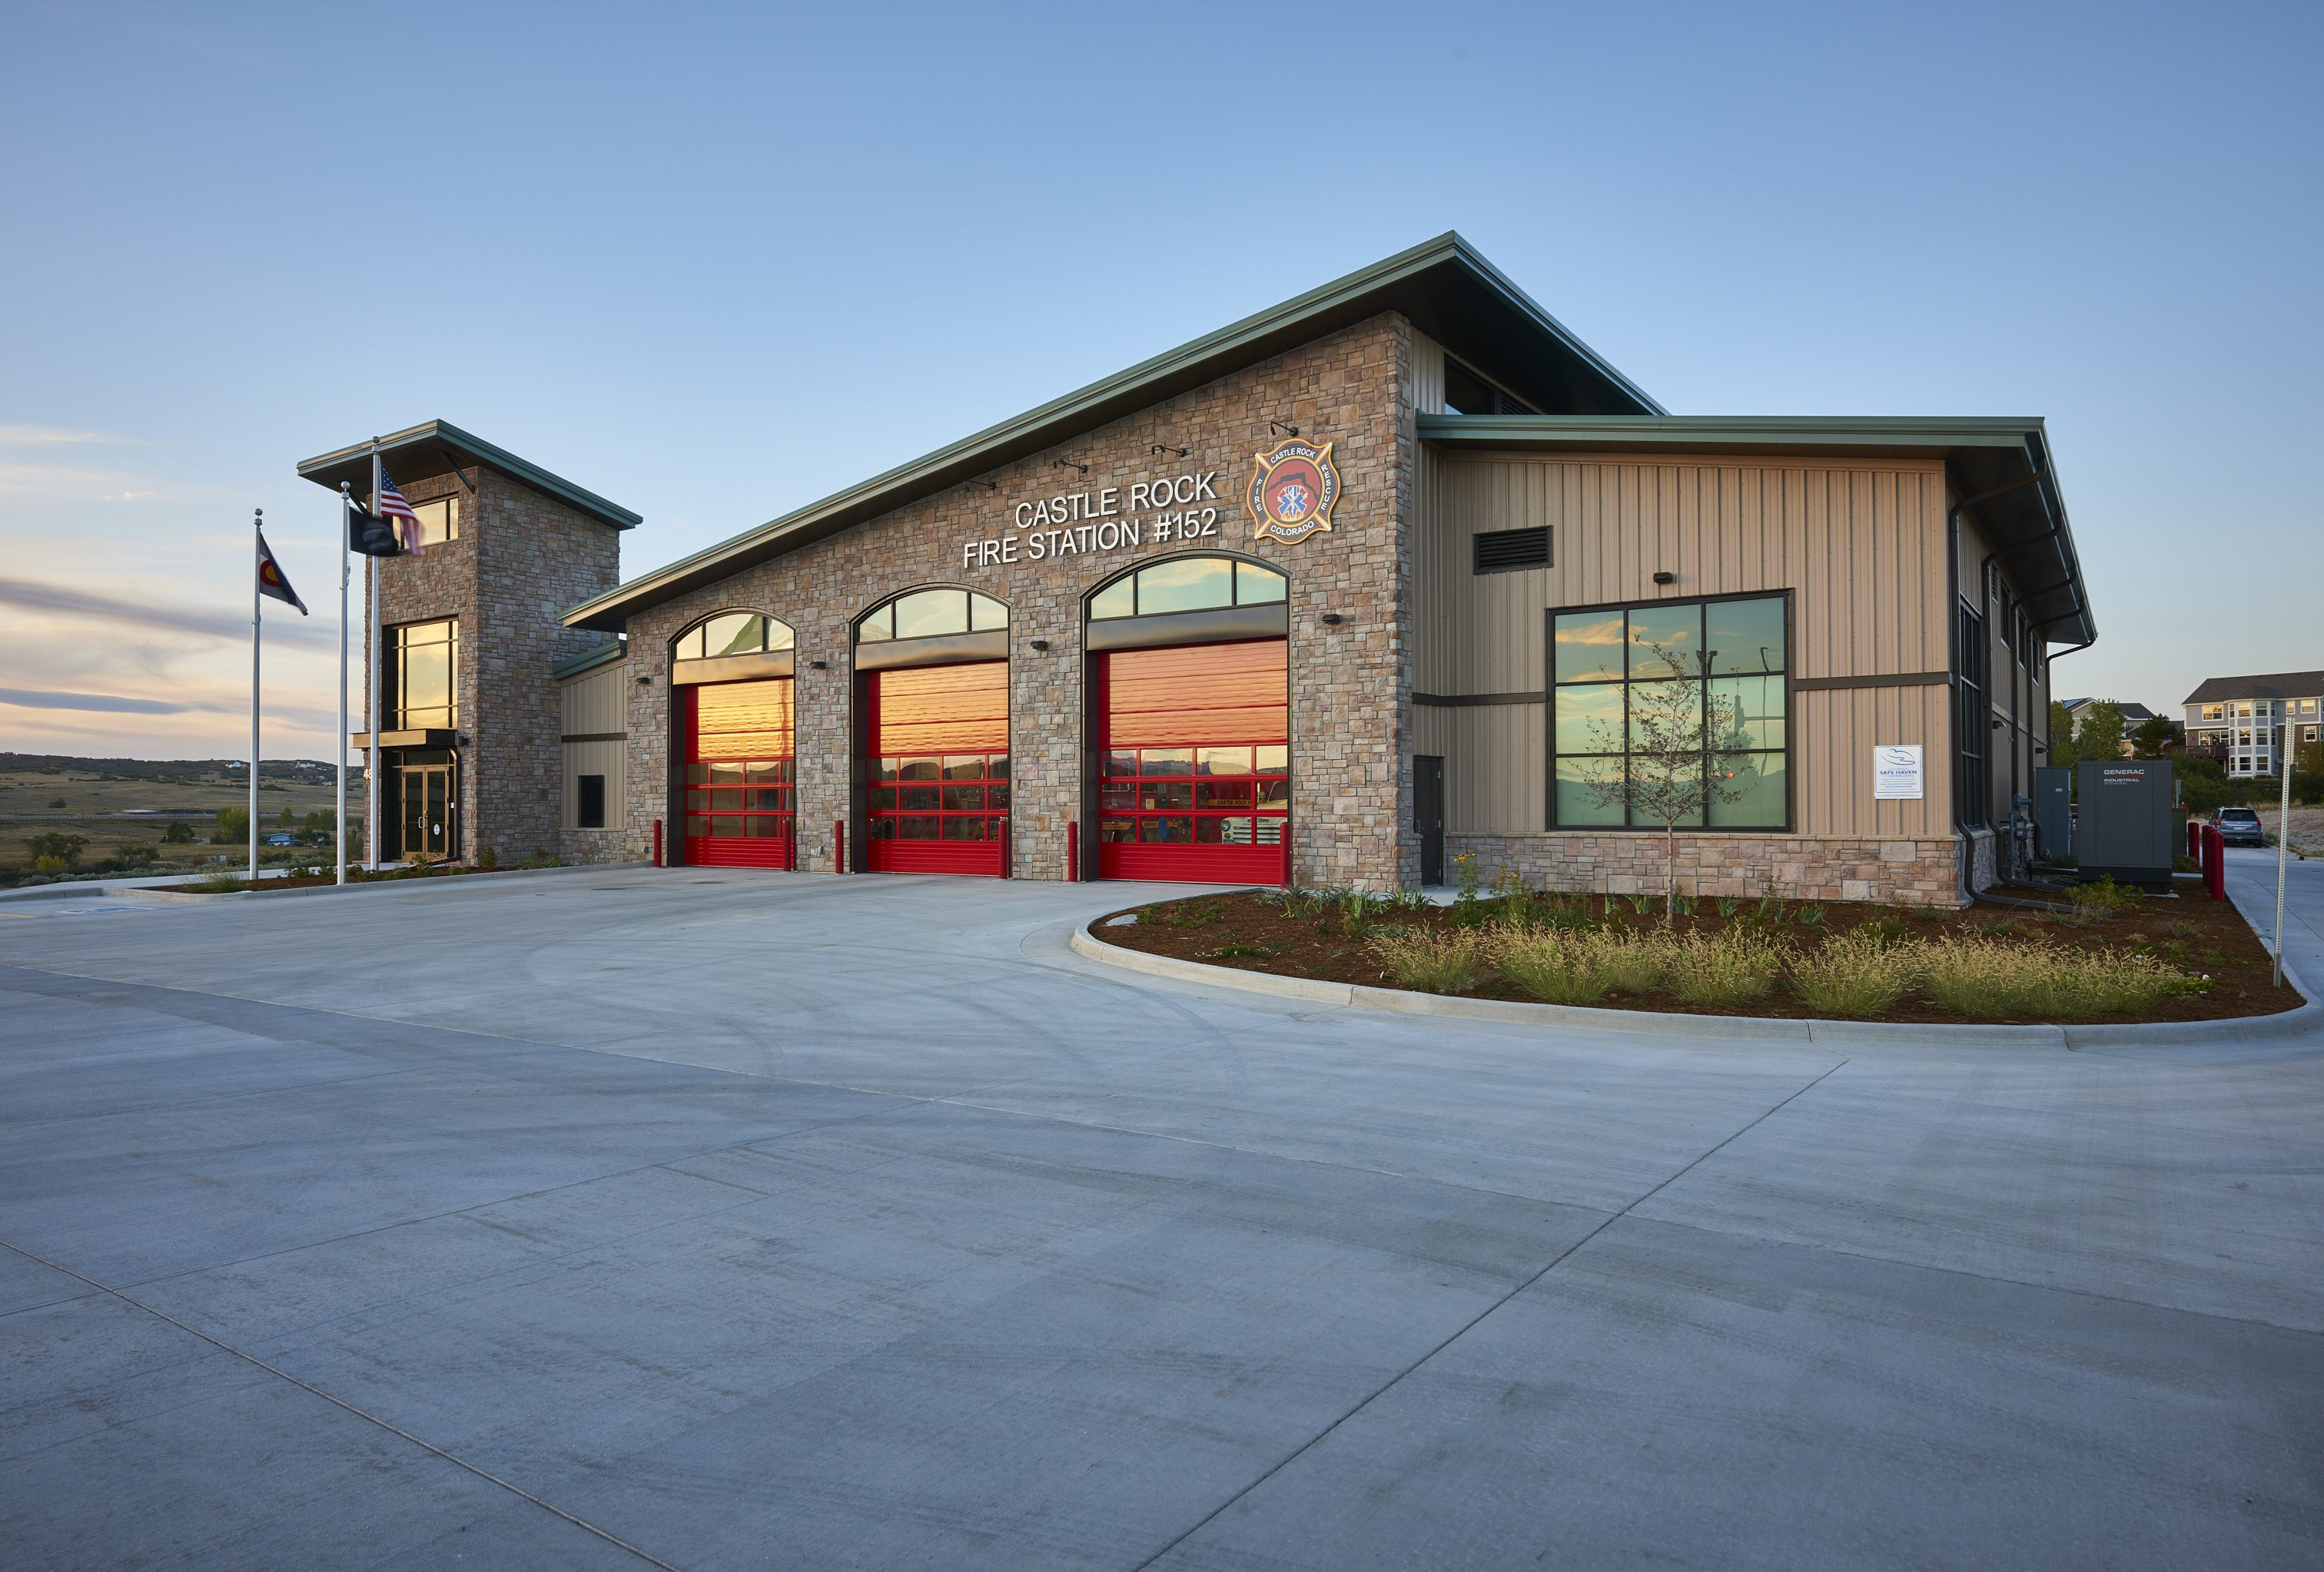 fire-station-152-castle-rock-seh-architecture-exterior-17832